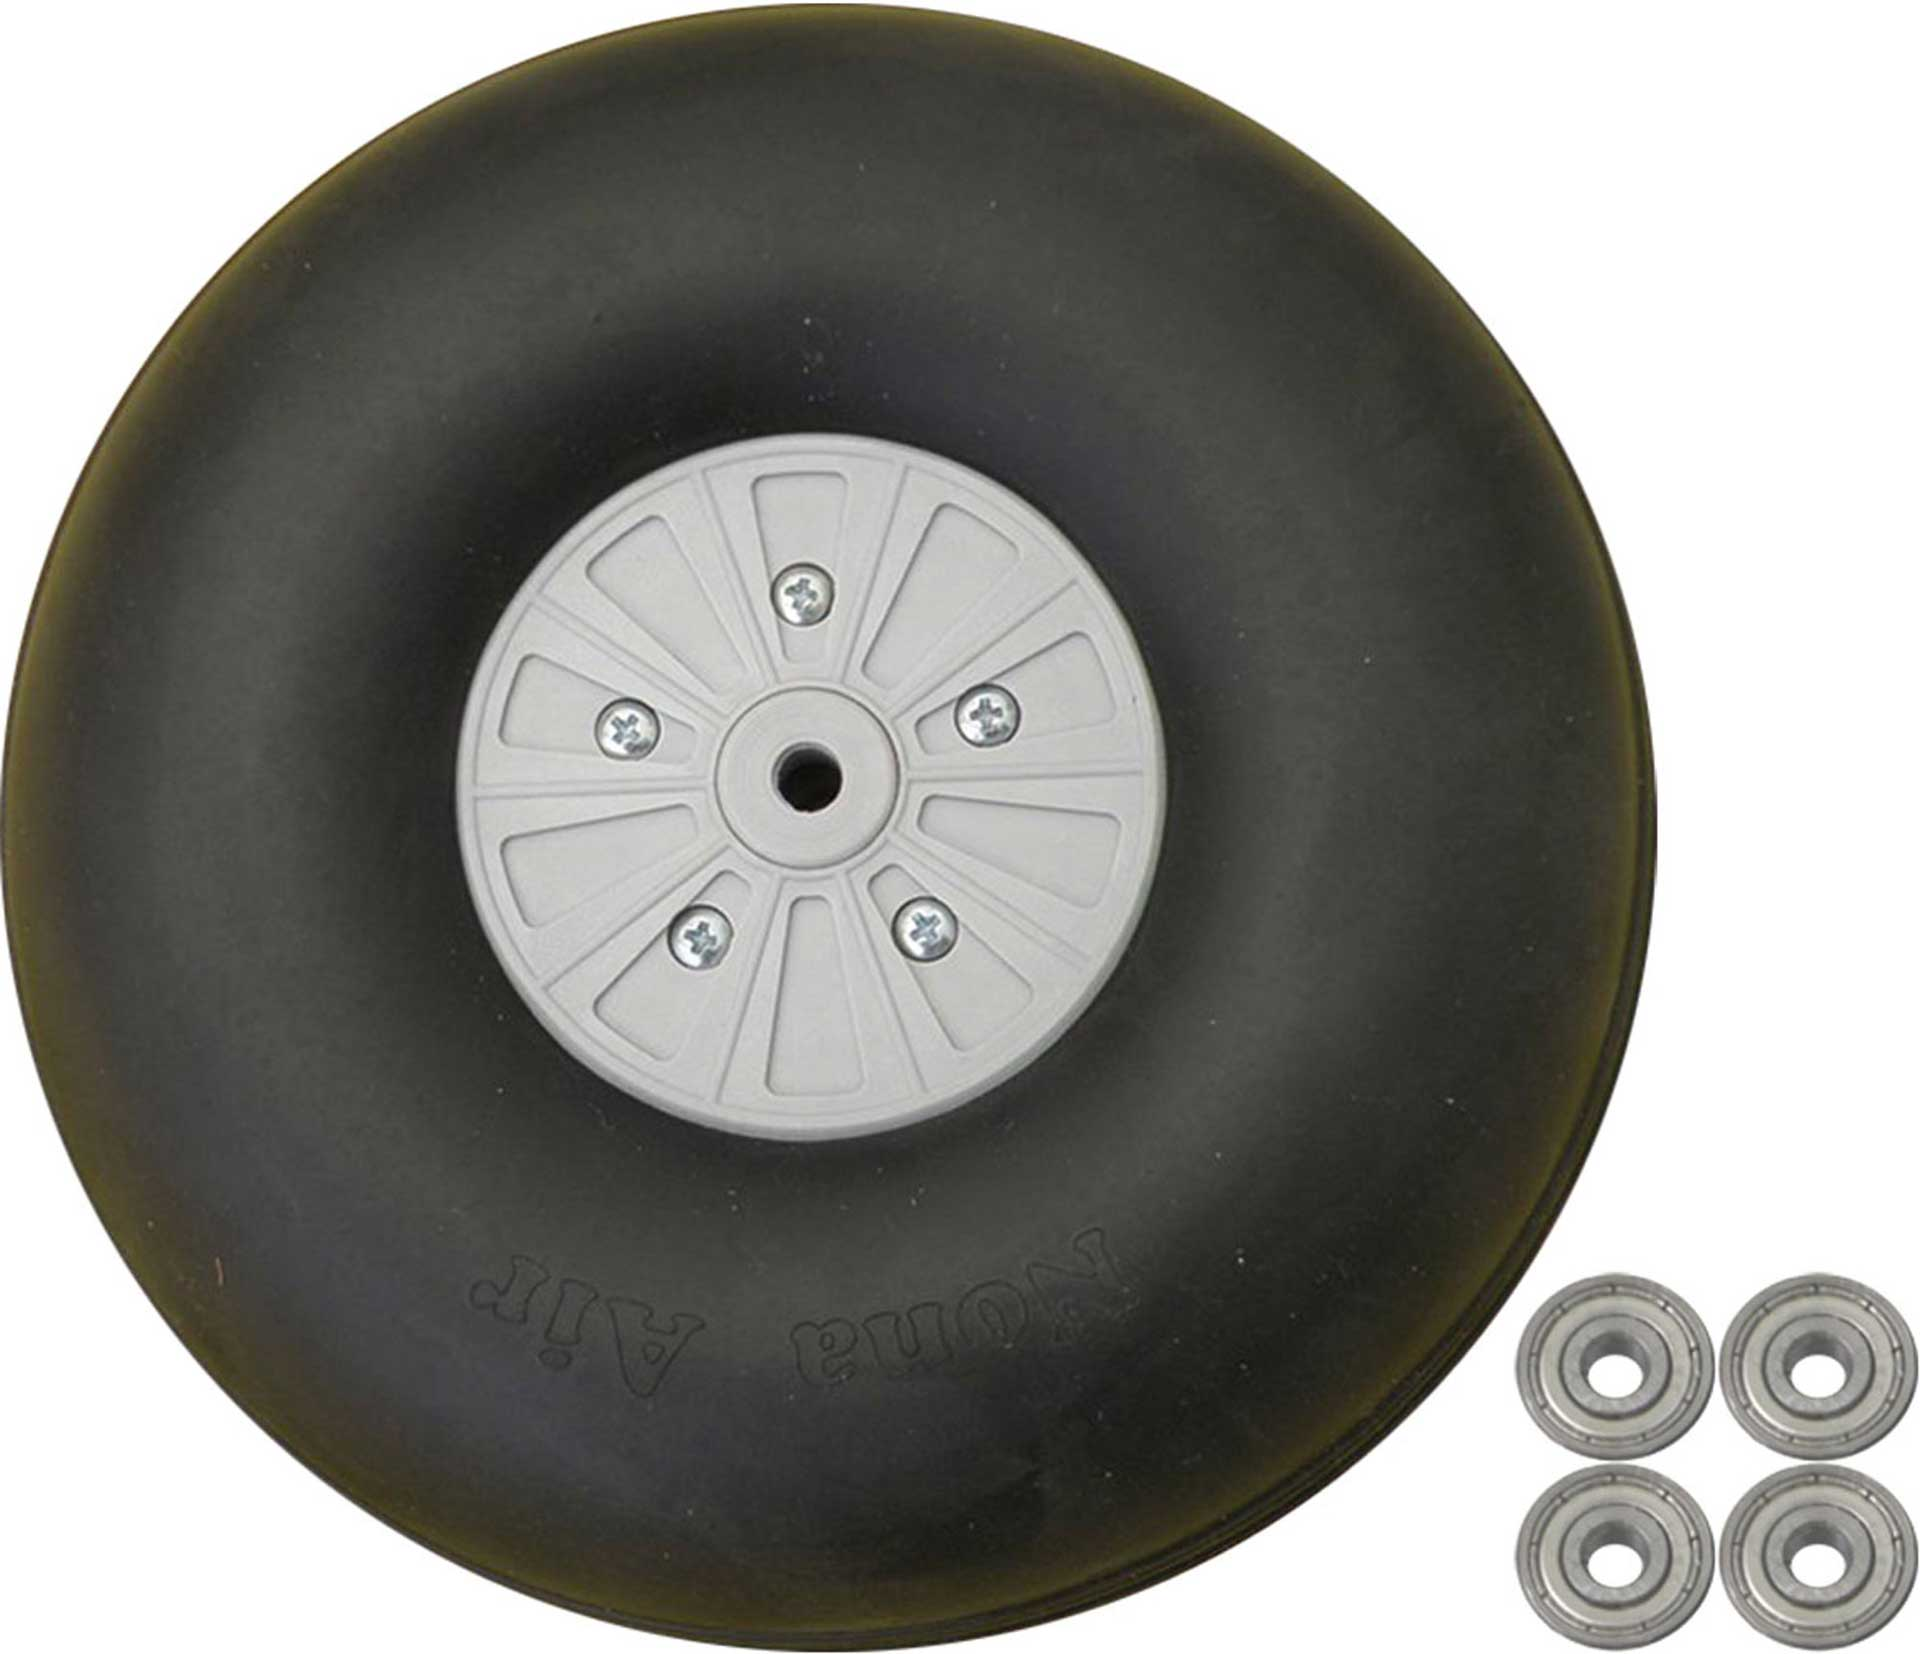 PLANET-HOBBY WHEELS HEAVY DUTY 150MM 2 PCS. WITH BALL BEARINGS